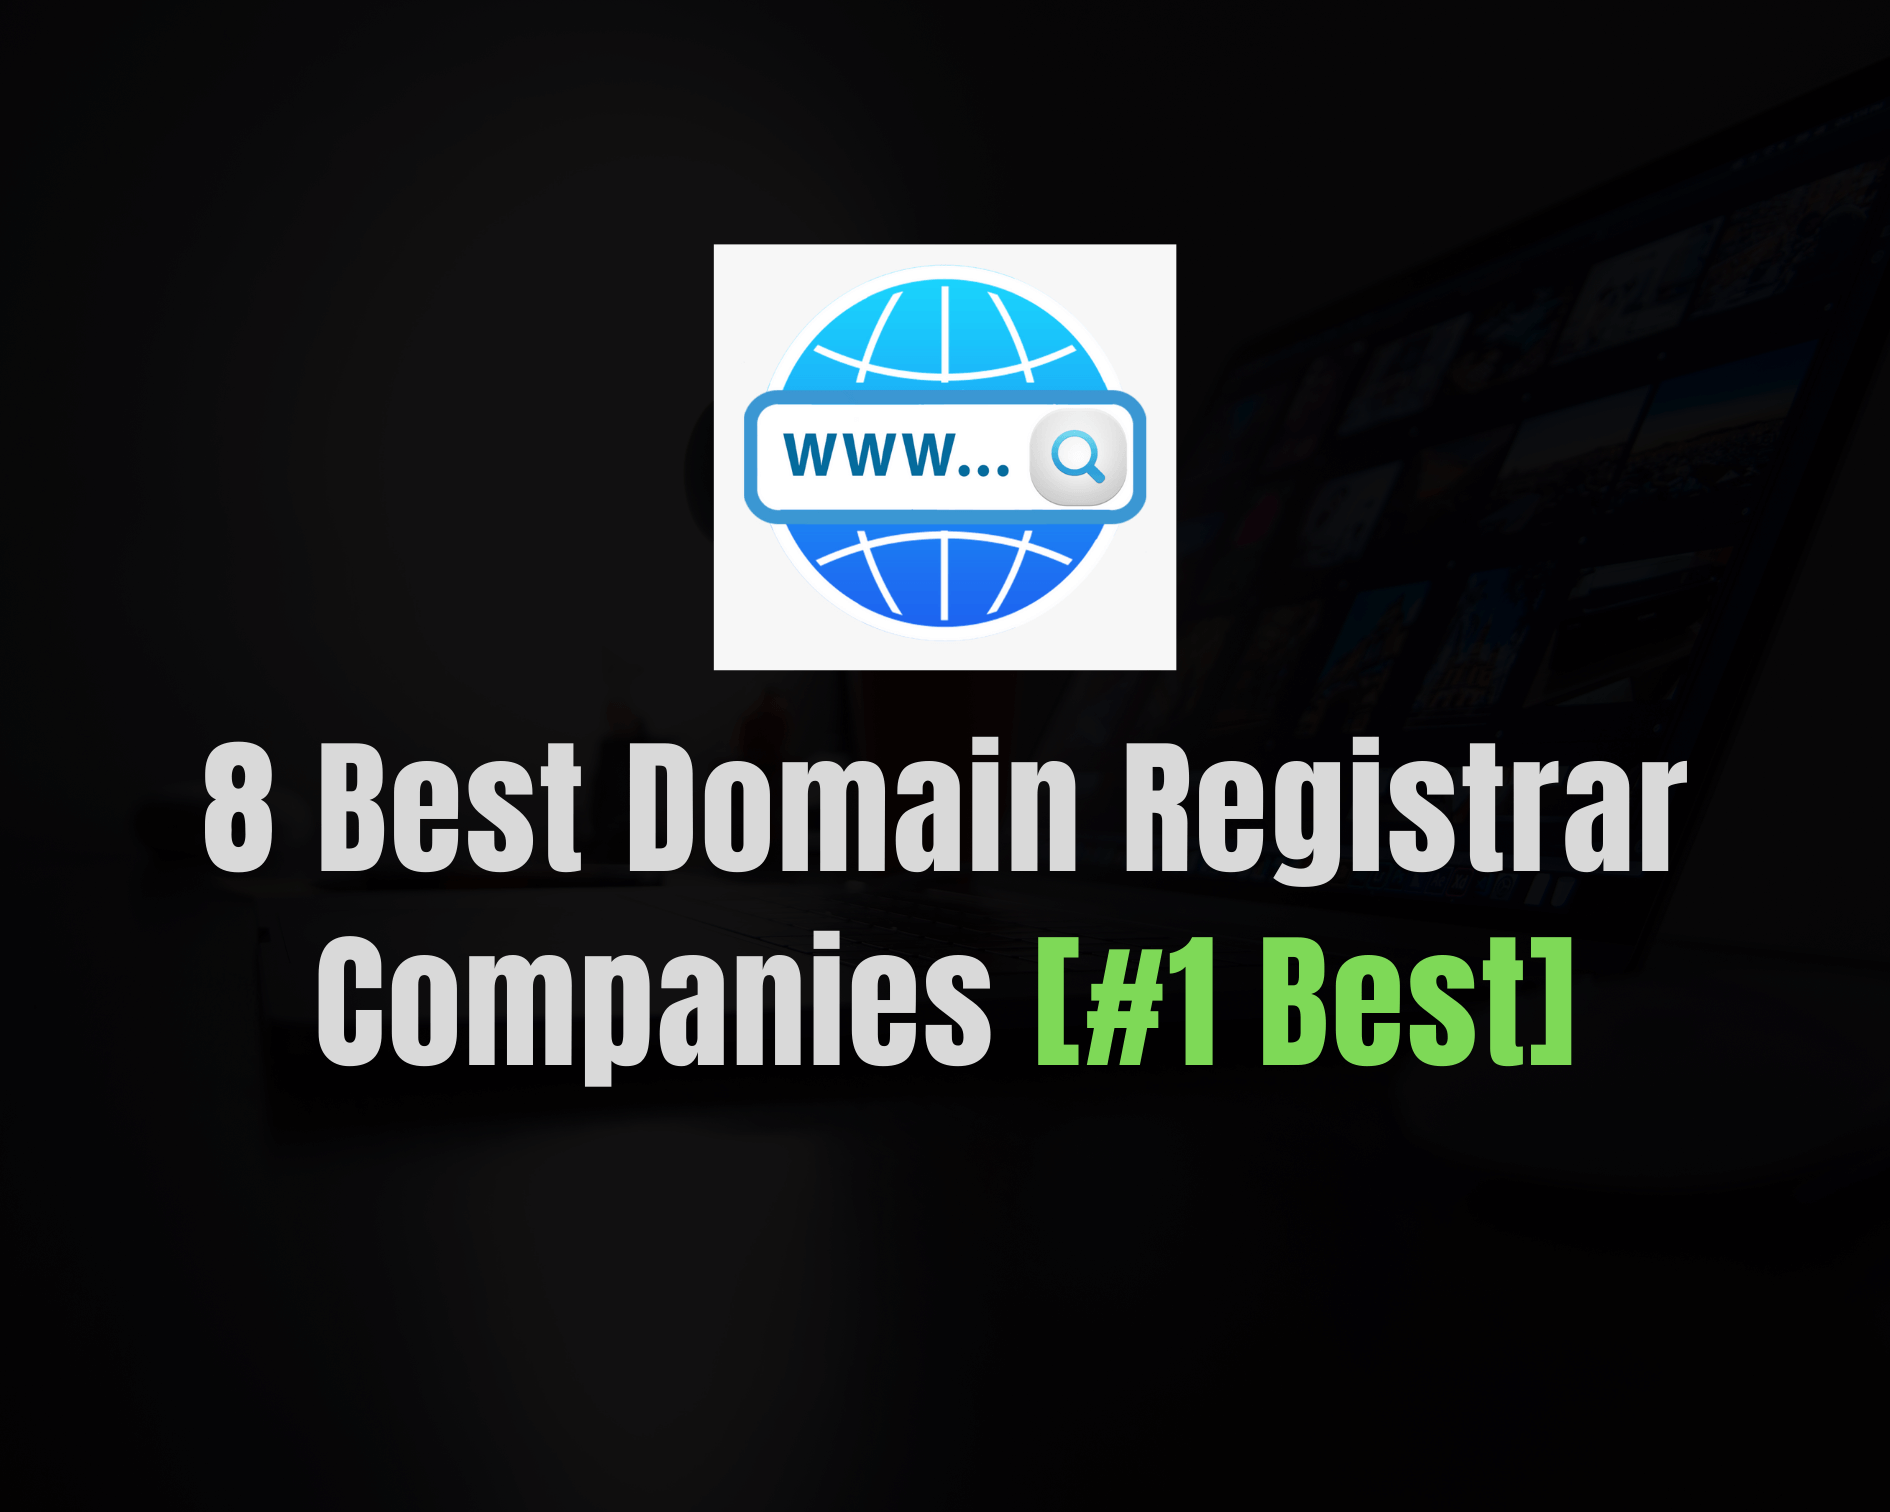 Top 8 Best Domain Registrar Companies of 2020